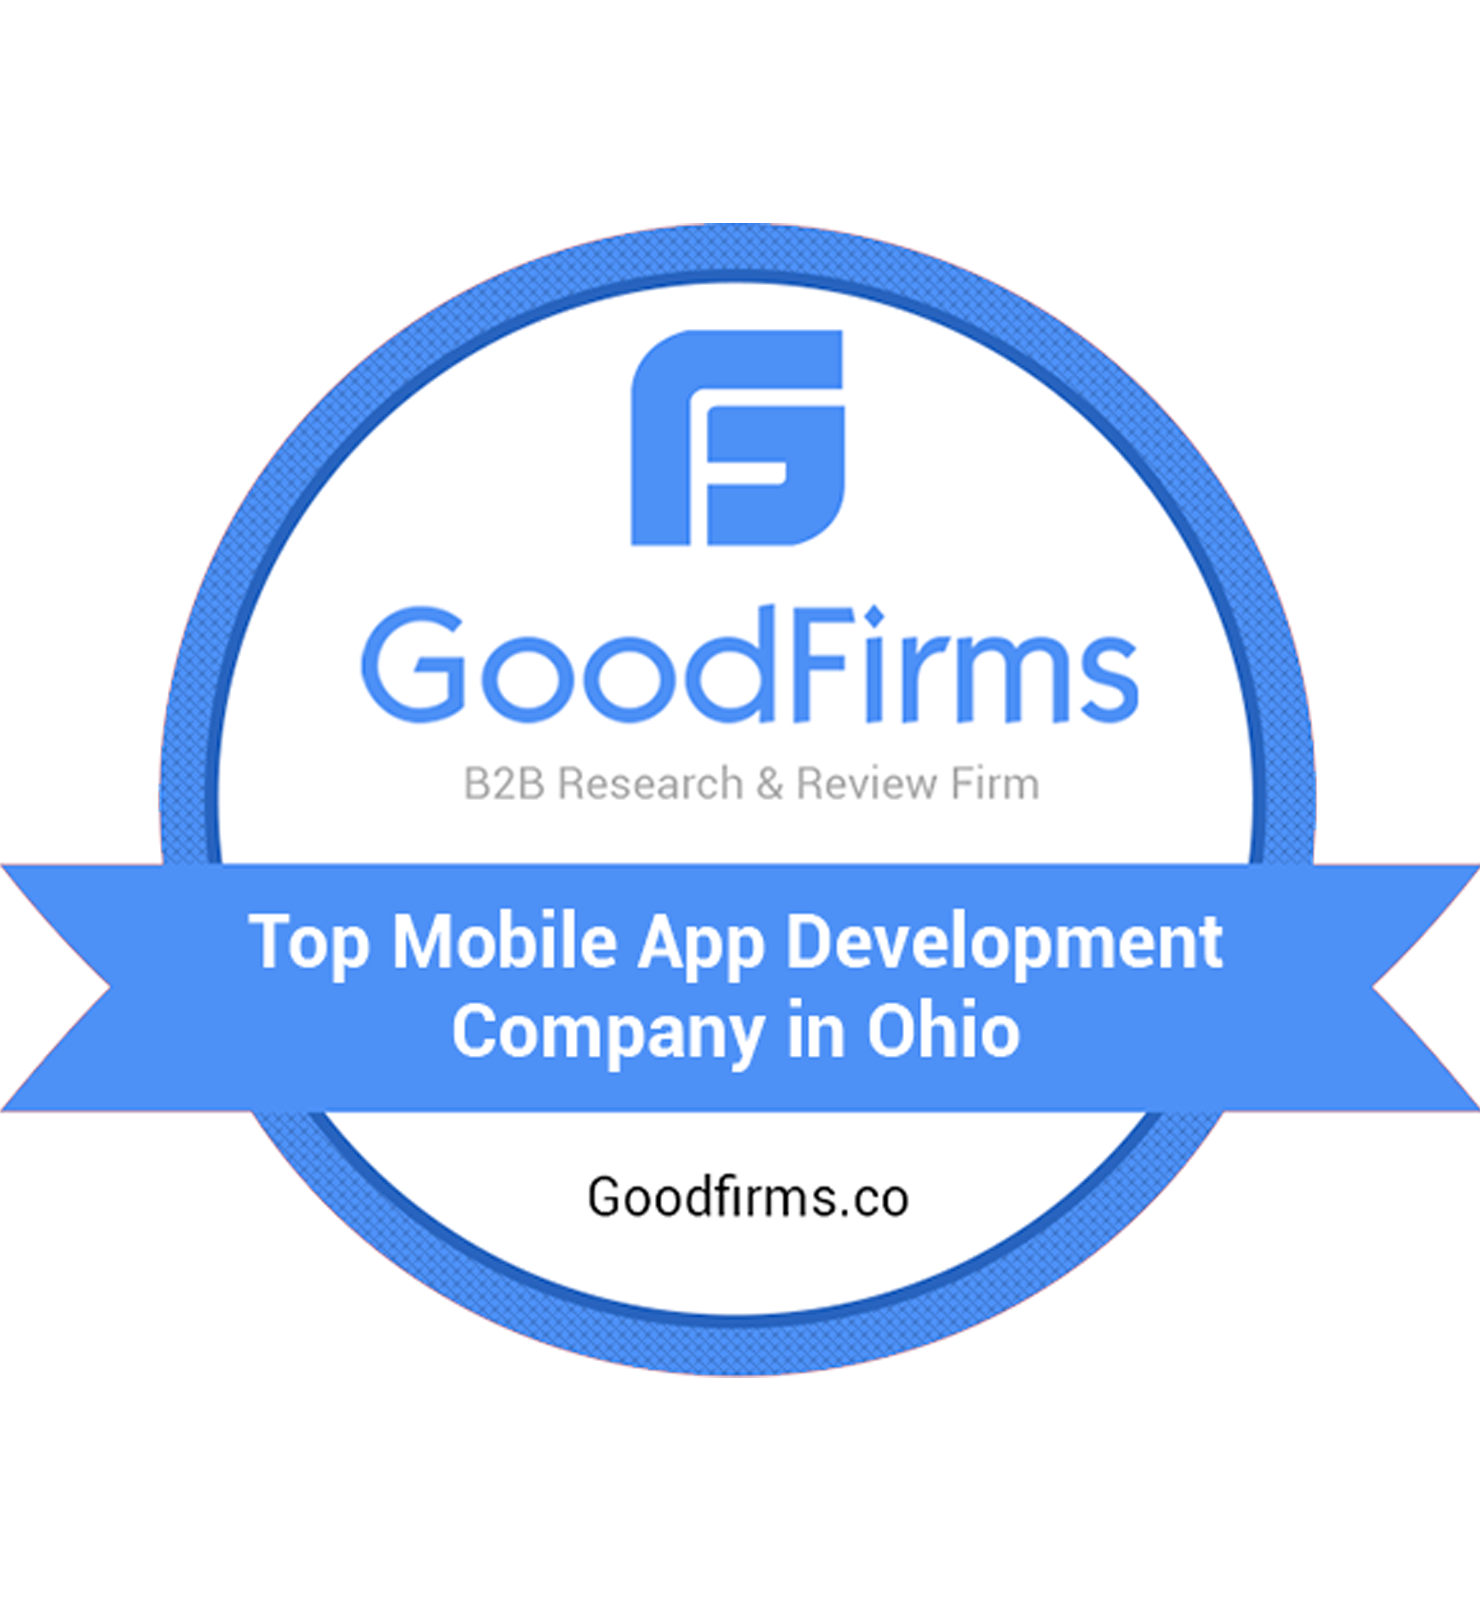 GoodFirms Top Mobile App Development in Ohio